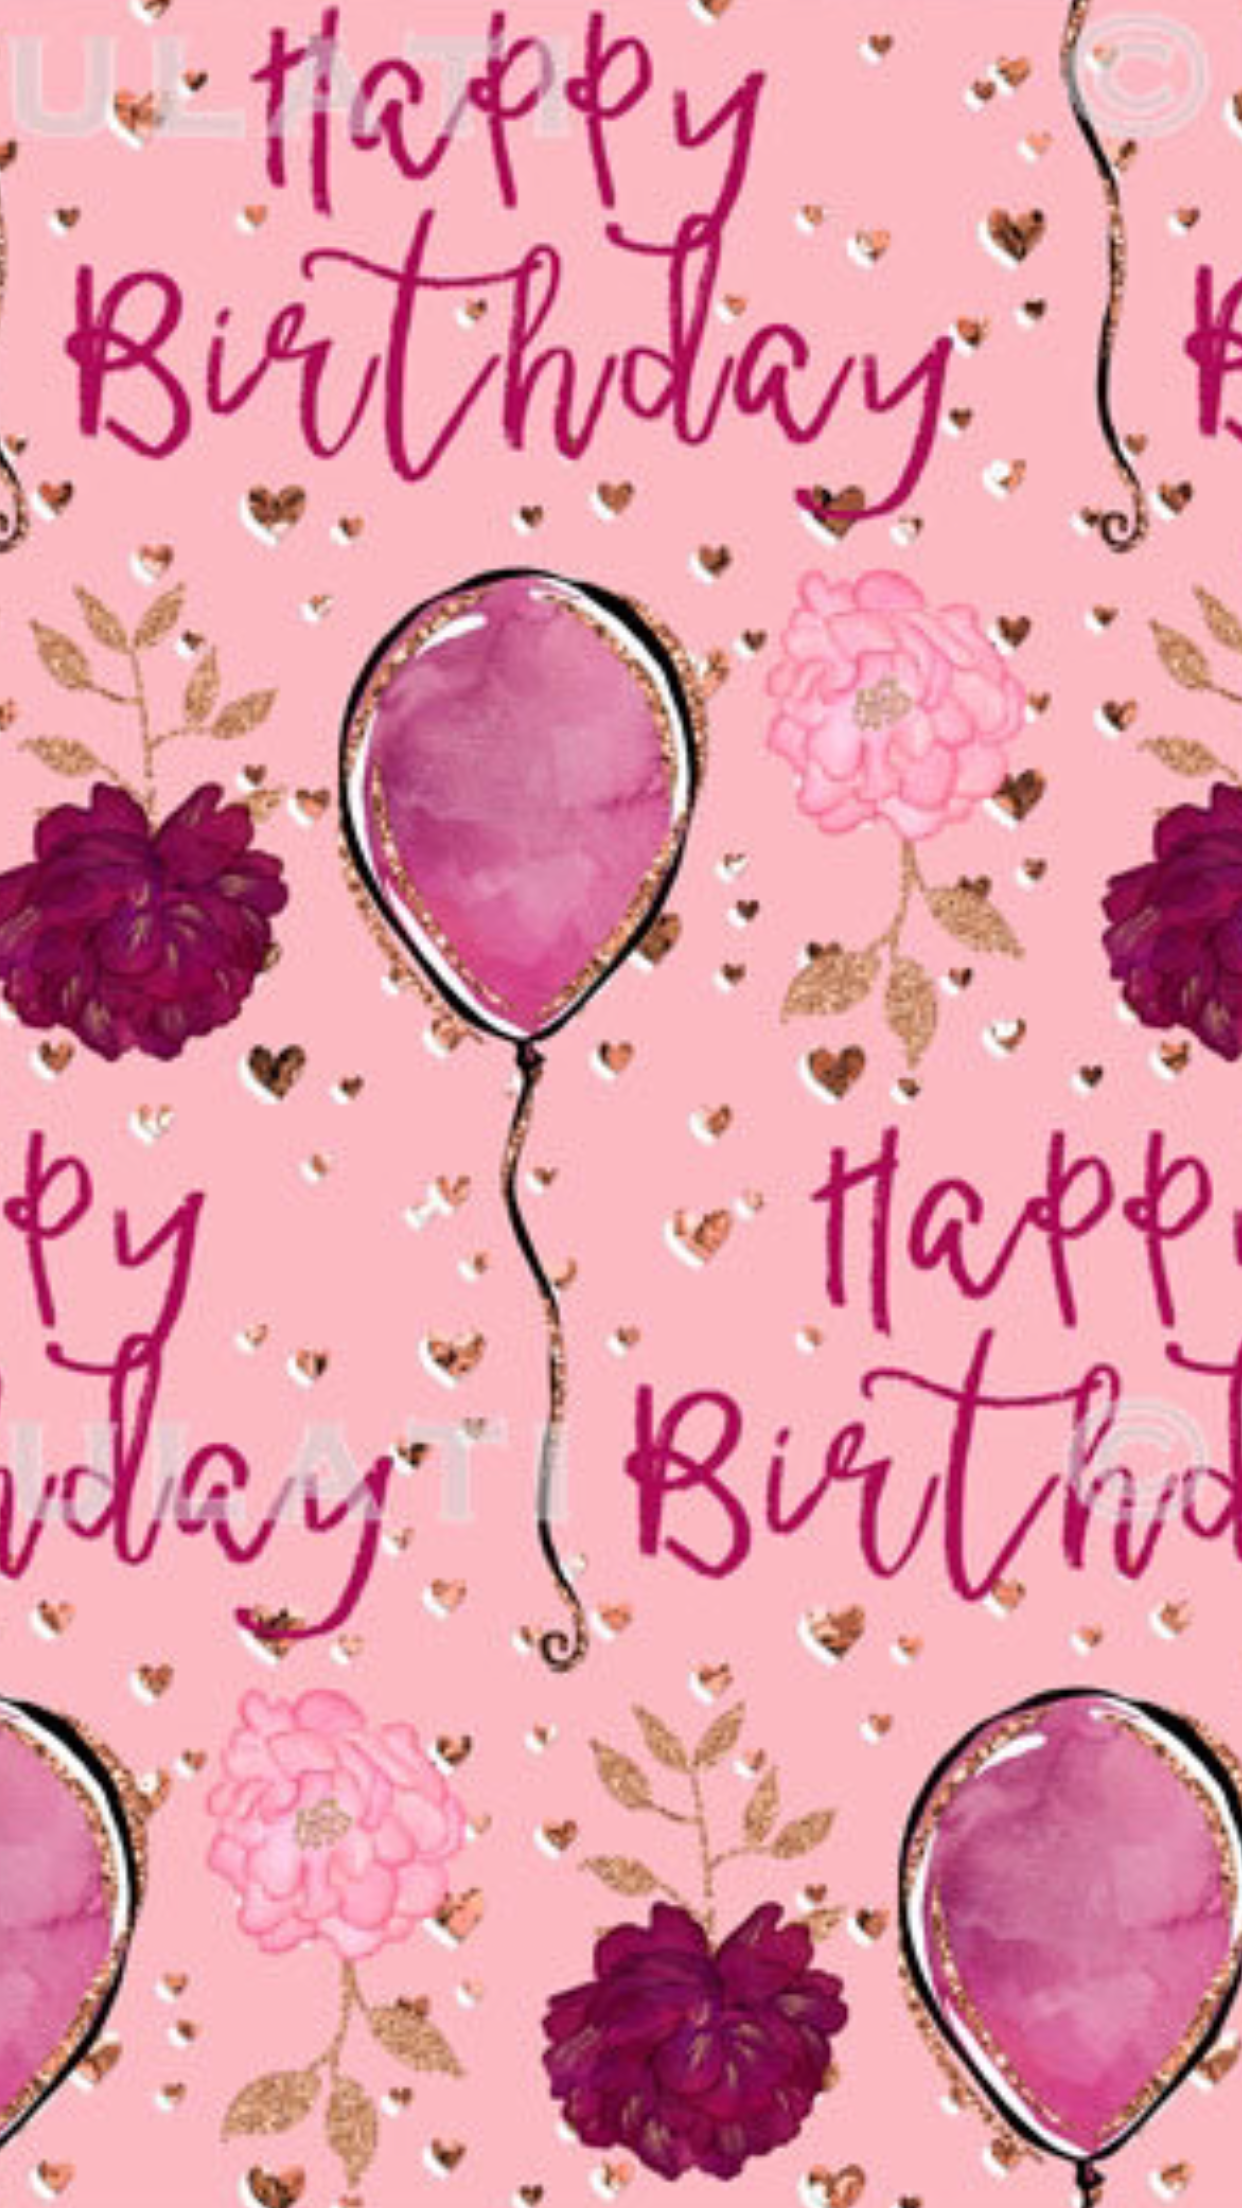 Pin By Laura Robinson On Phone Wallpapers Holiday Wallpaper Birthday Greeting Cards Iphone Wallpaper